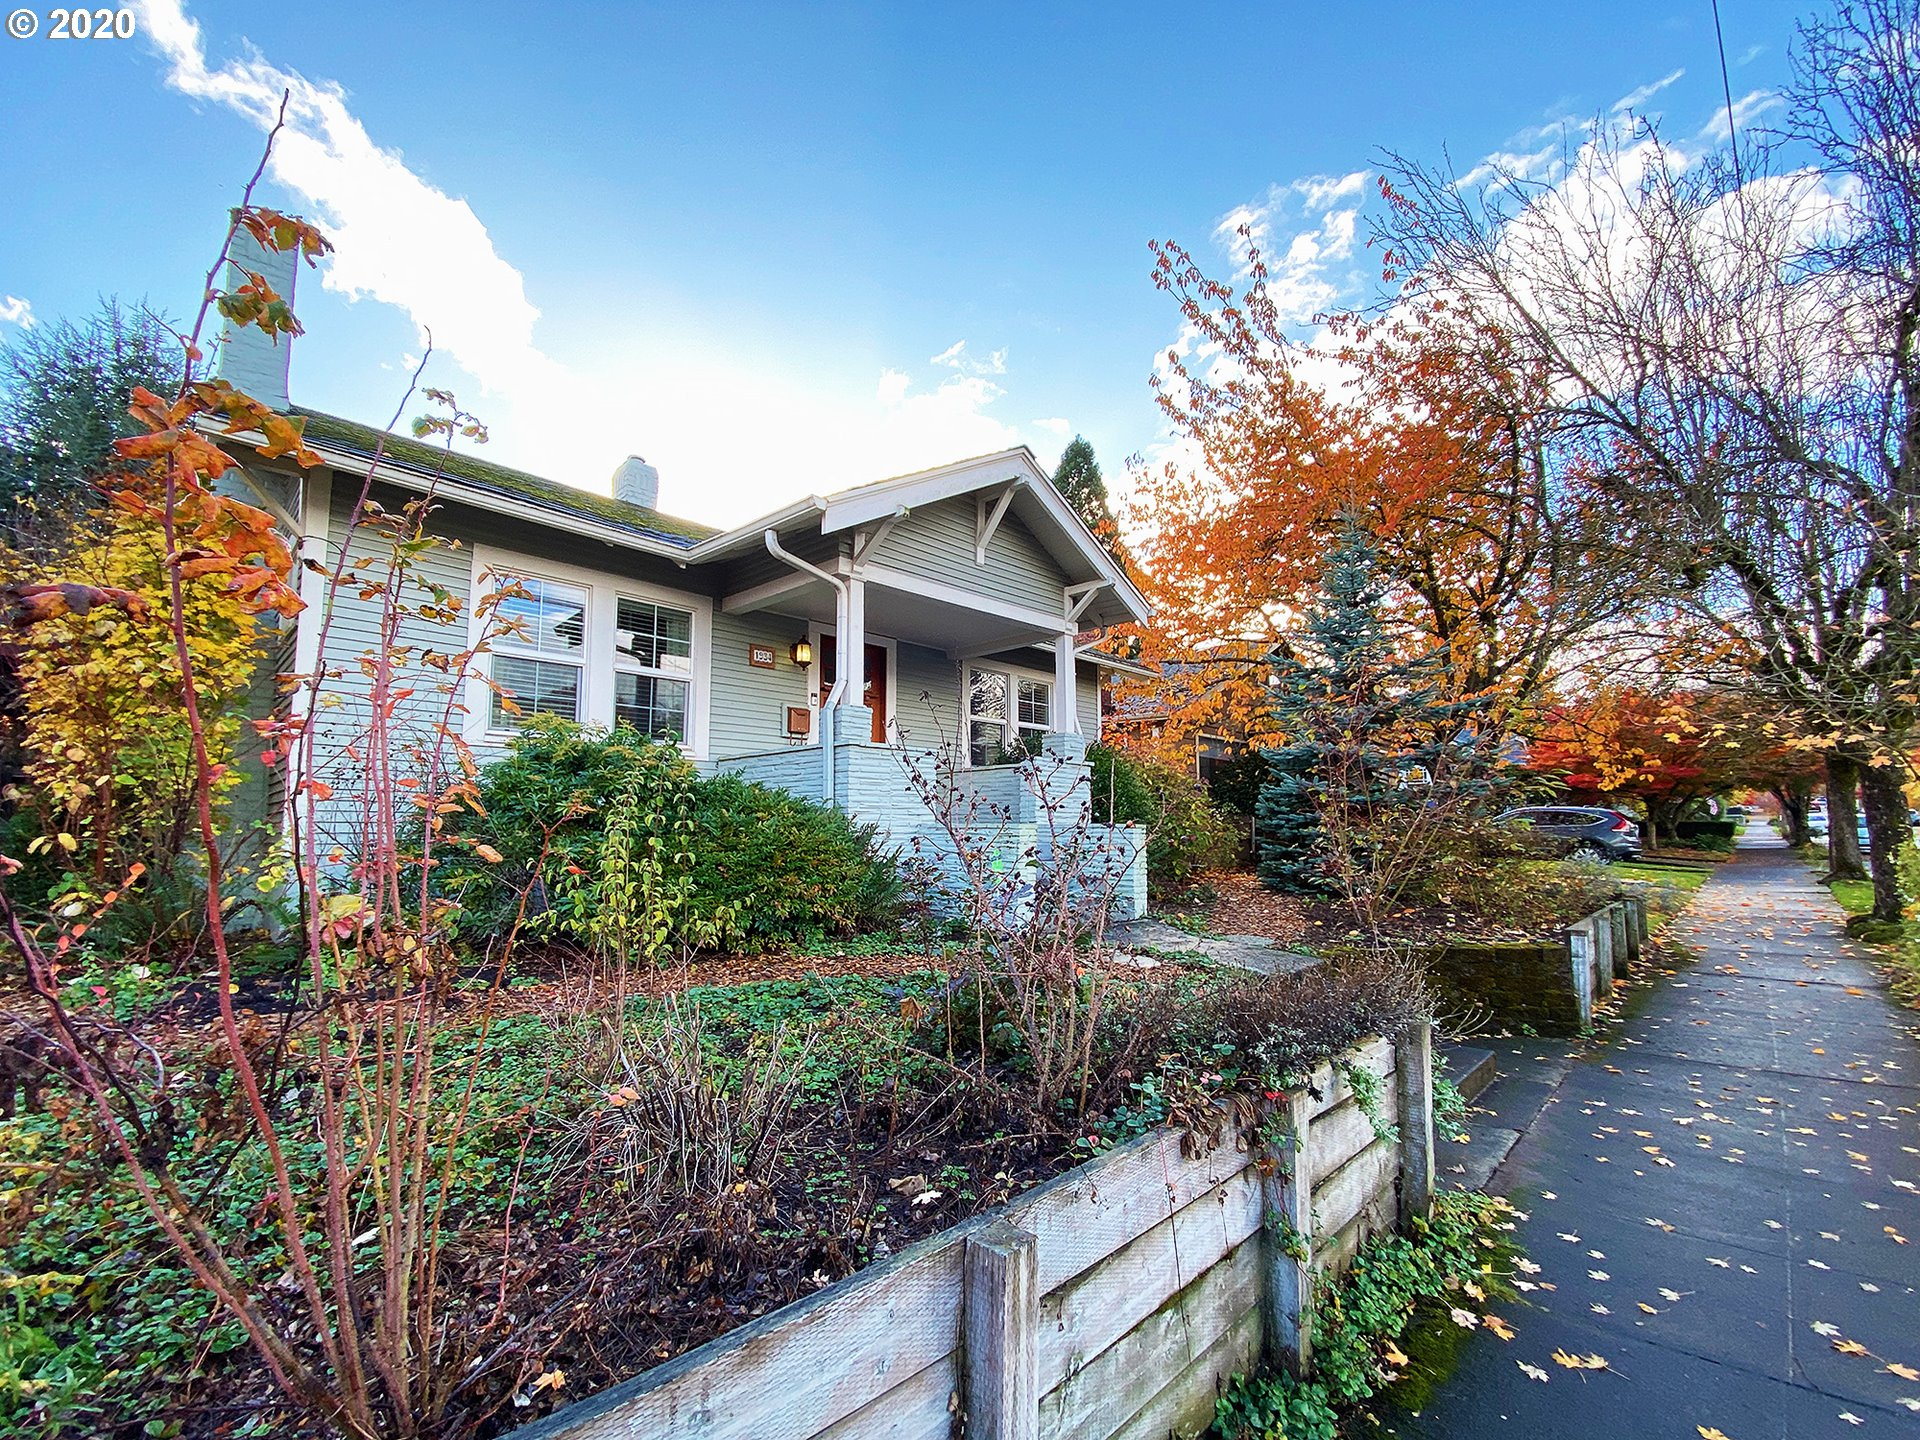 Live in Sellwood for $550,000! Classic Westmoreland craftsman bungalow, on large lot, sits high above the street. Blocks to restaurants, shops & trail/river. Out of the city yet so close! Fireplace with built-ins, large windows, cute breakfast nook in kitchen, gas range. Large, private backyard with fruit trees, sunny area & large covered deck- Certified backyard habitat. Finished basement has non-conforming bedroom with walk-in closet plus family room. Newer furnace. Garage as is. See 3D tour!